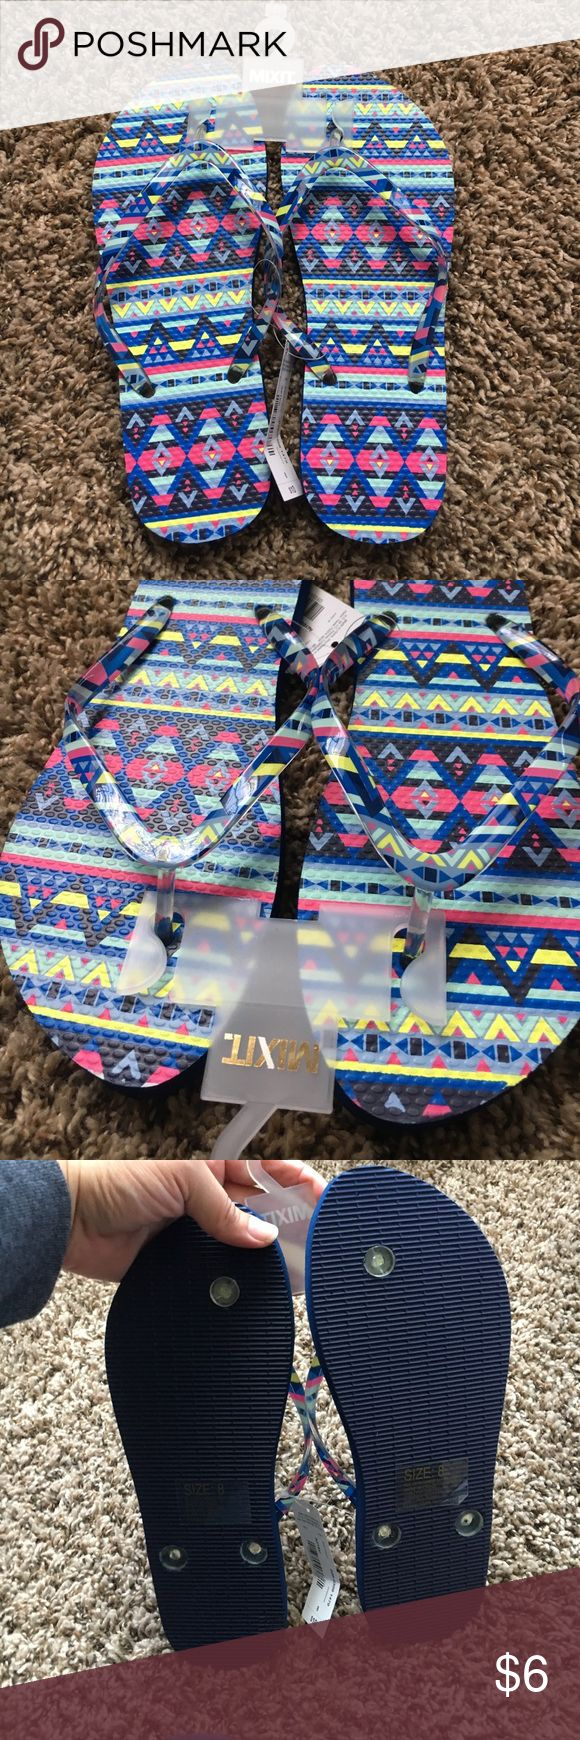 Mixit Aztec print Flip flops NWT SZ 8 Brand New with Tags these flip flops come in a fun Aztec pattern which is perfect from summer! Mixit Shoes Sandals